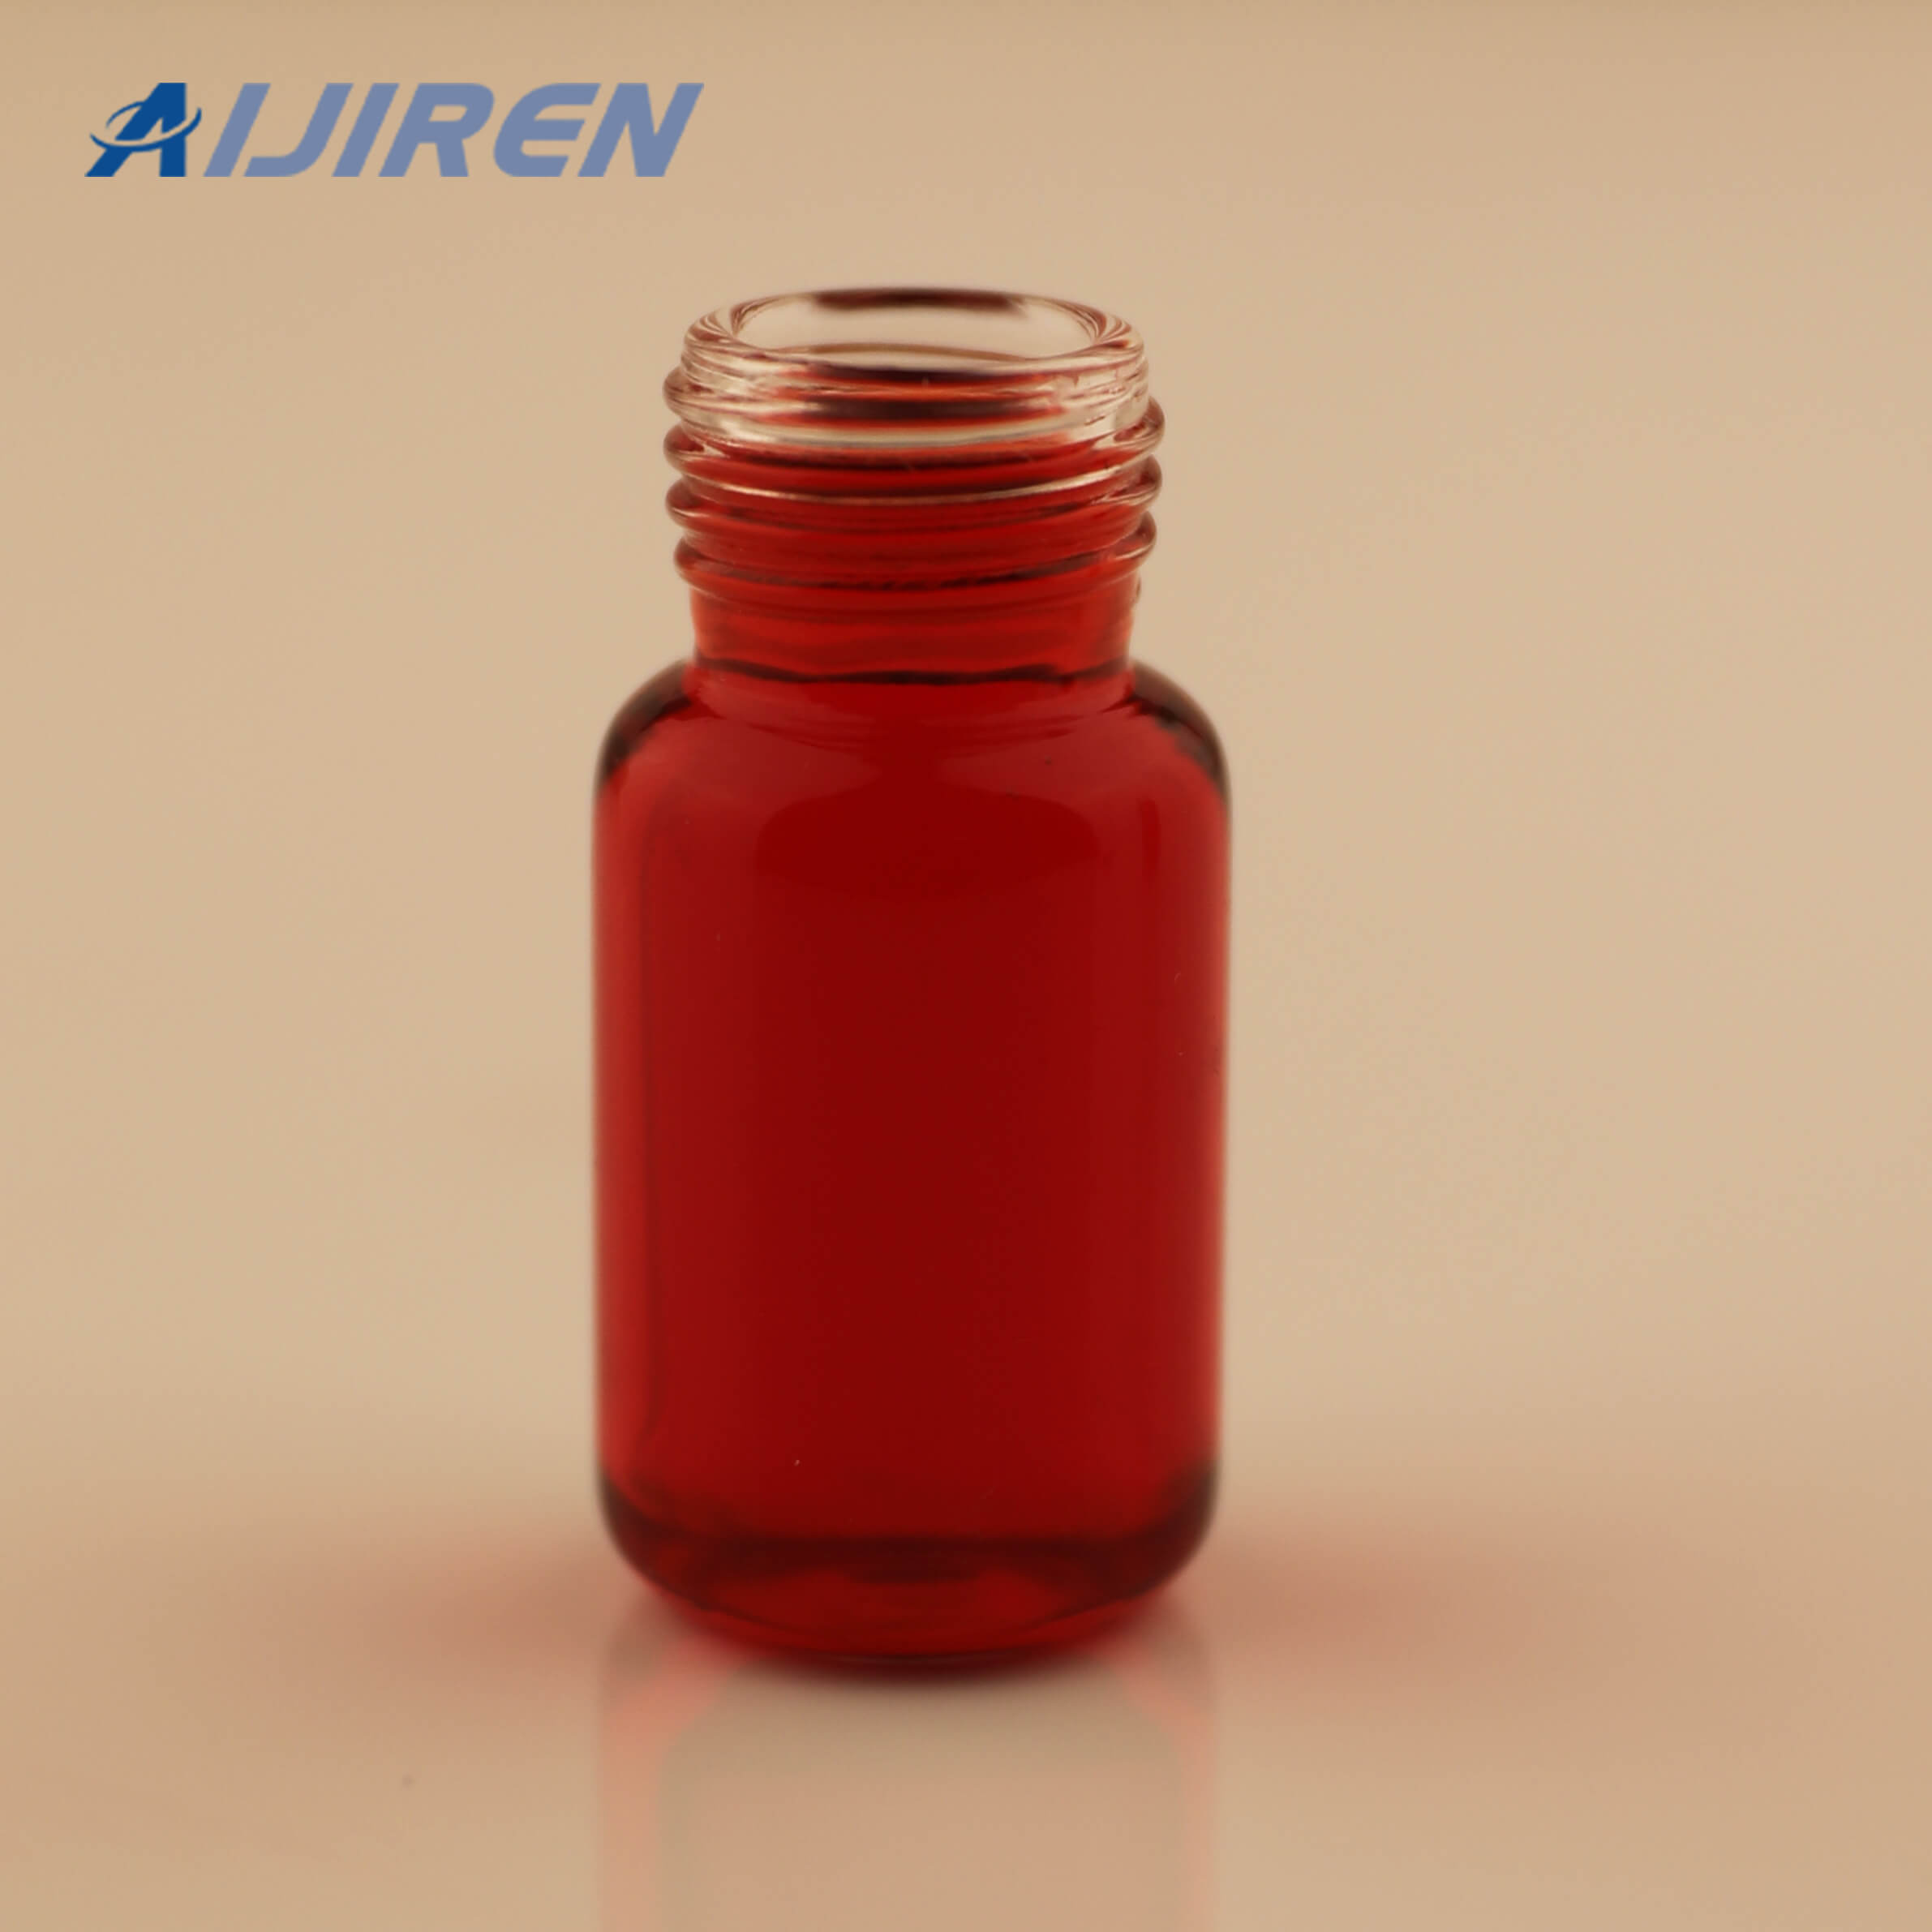 10ml Clear Glass Headspace Vial for Agilent